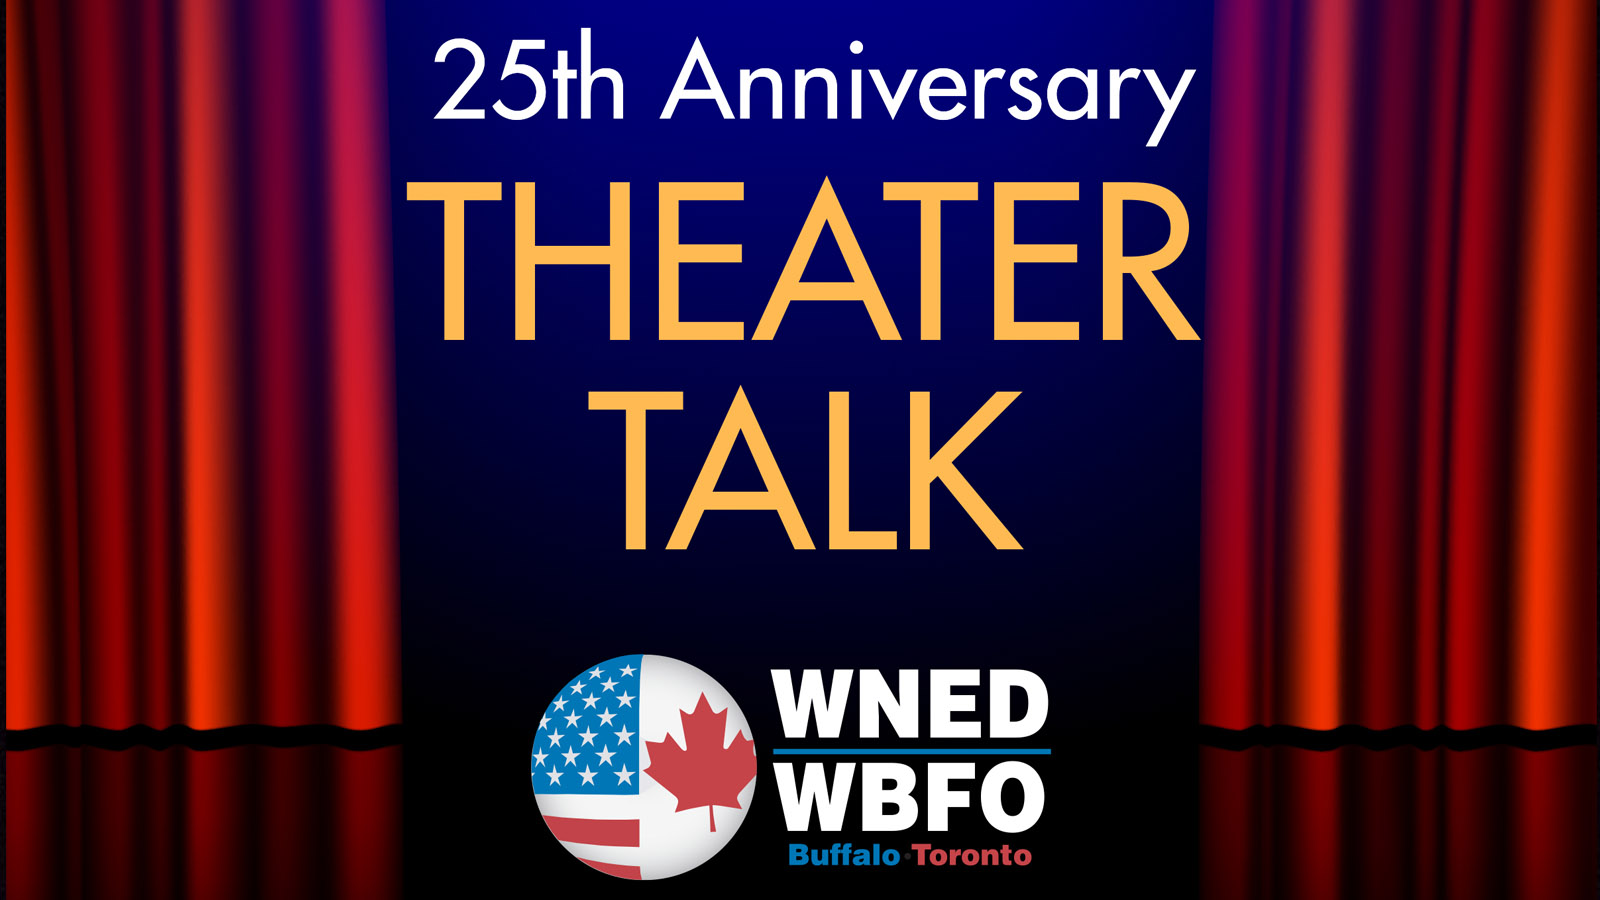 25th Anniversary of Theater Talk